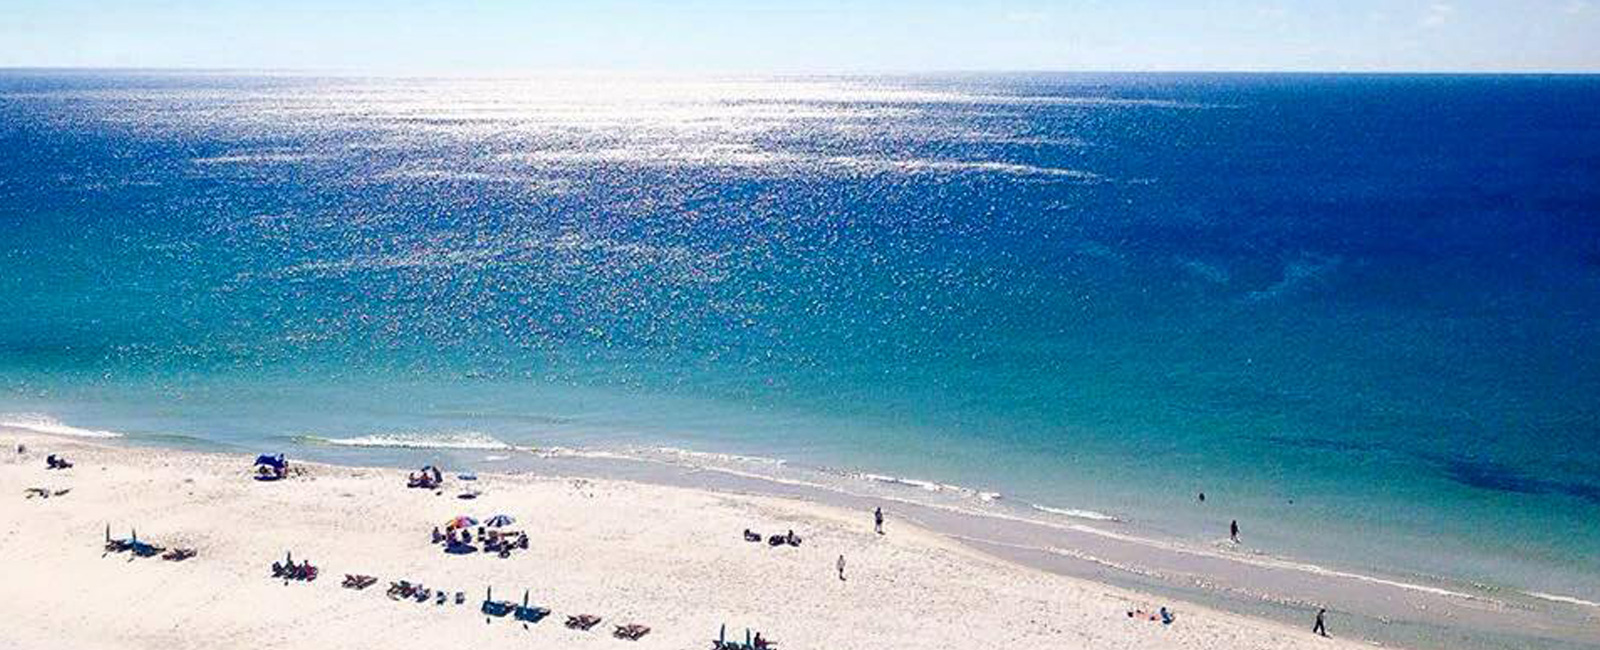 Sugar Beach Alabama The Best Beaches In World Resort Gulf Ss